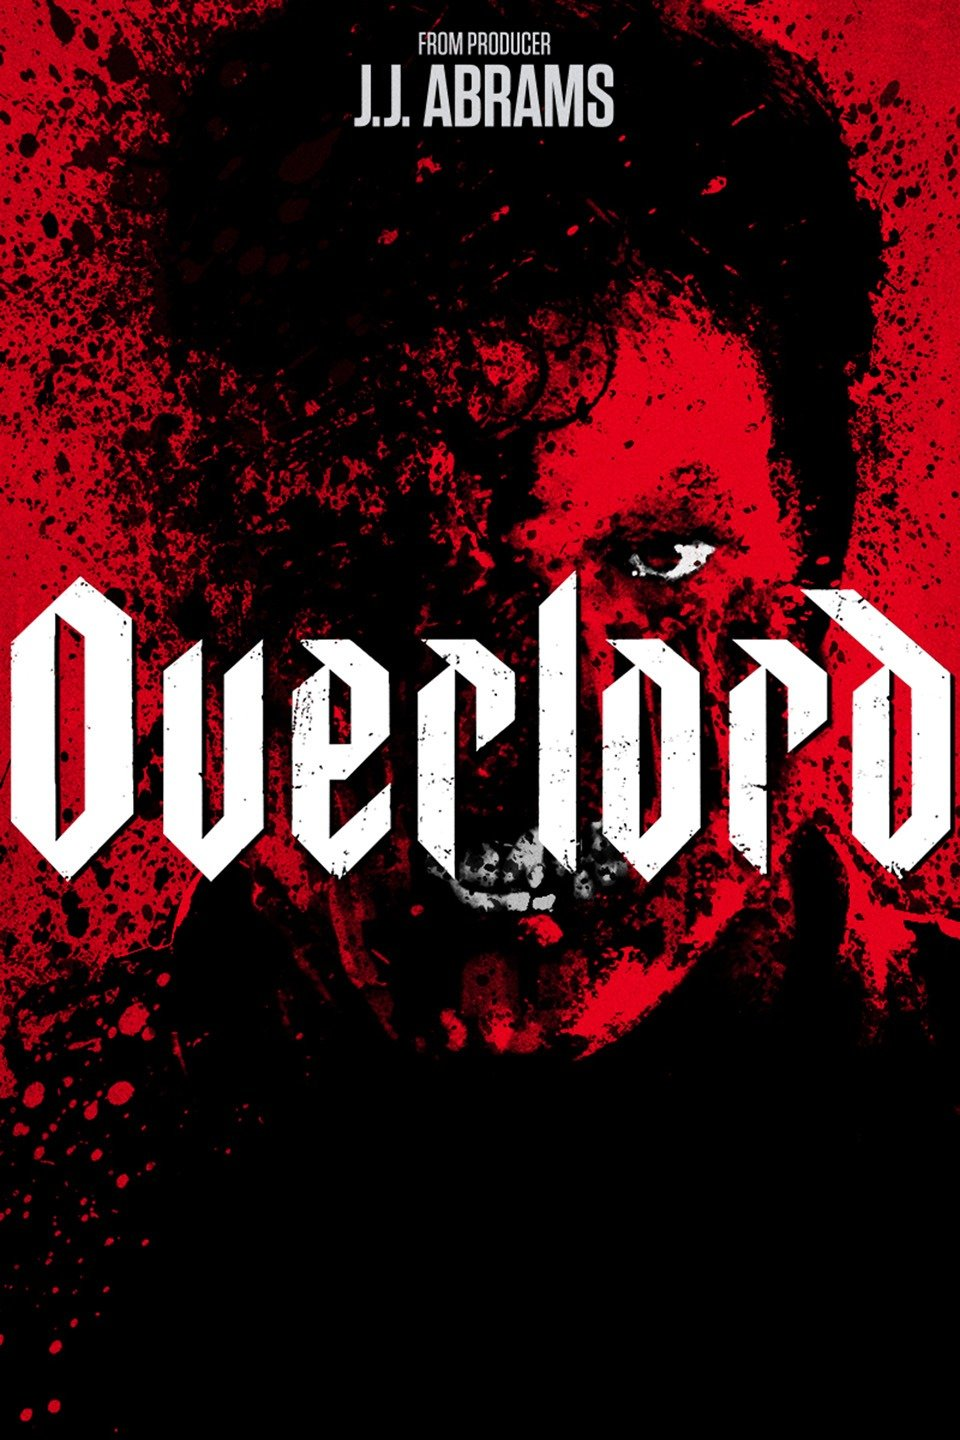 Overlord 2018 Full Movie Download HDRip 720p | G-Drive Link | Watch Online